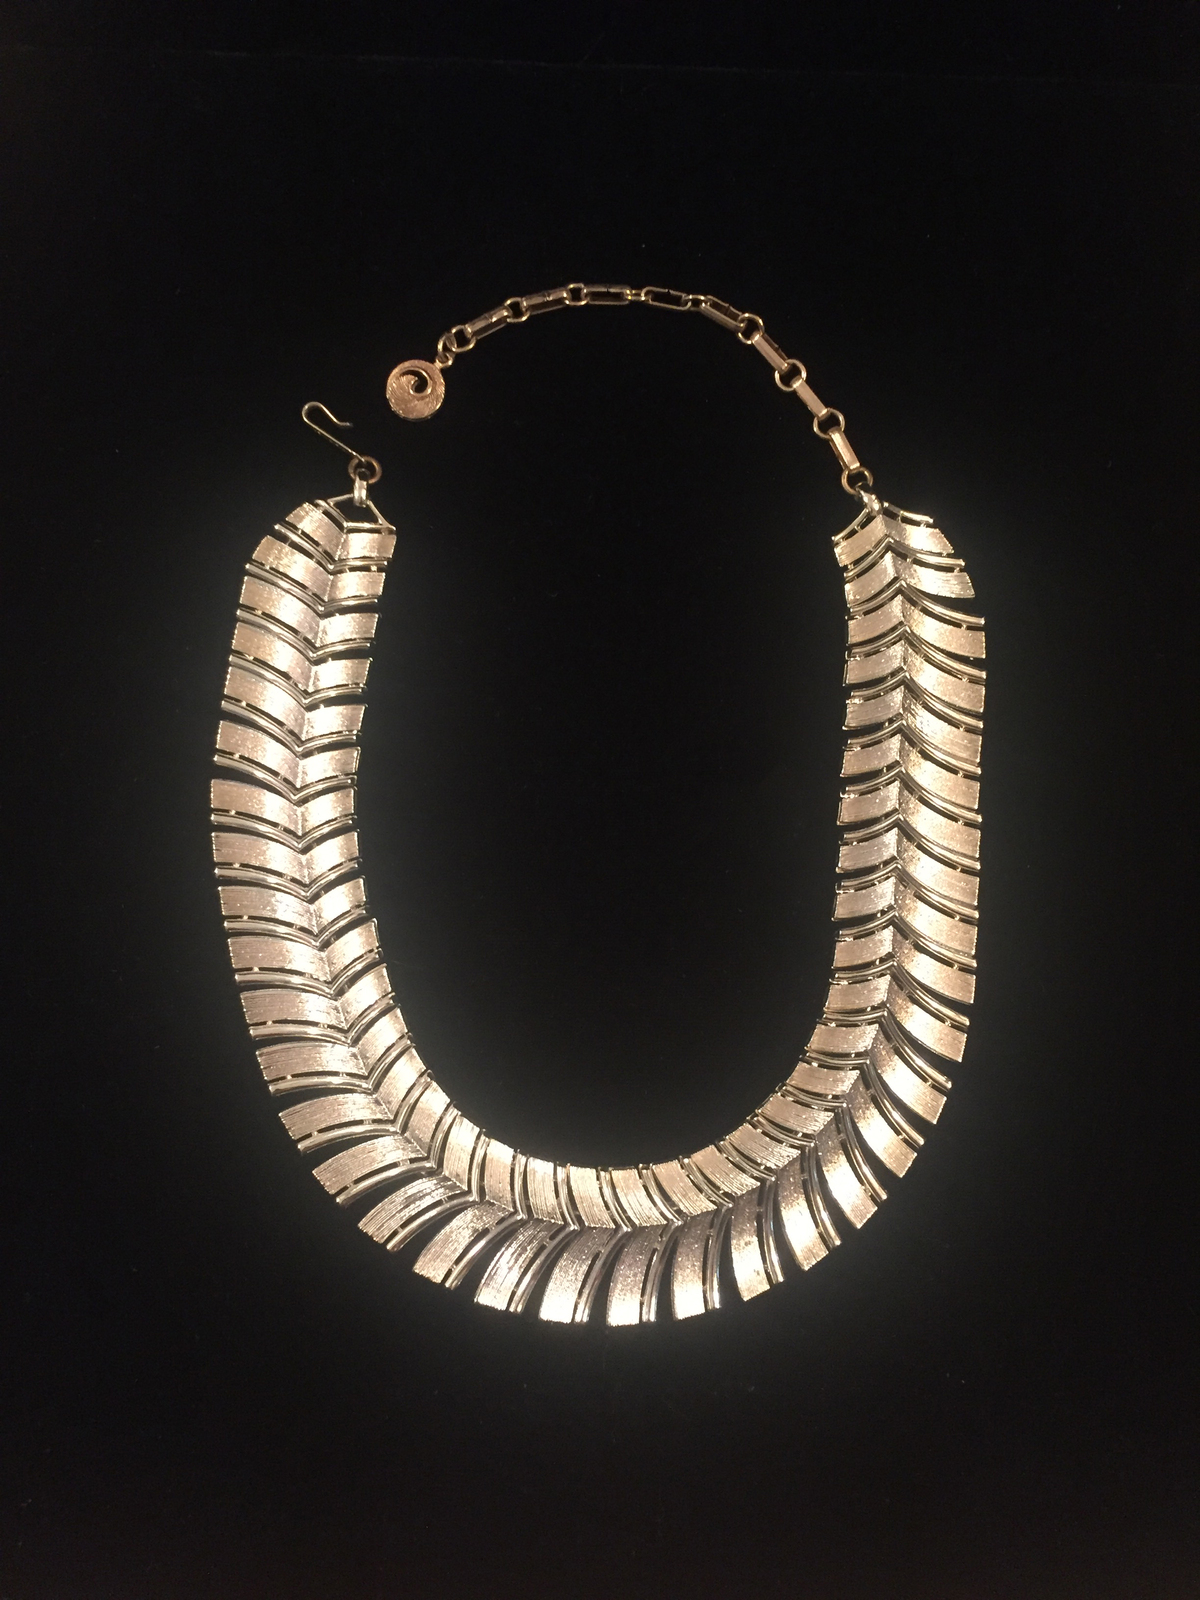 Vintage 60s Segmented Gold Spine Choker Necklace